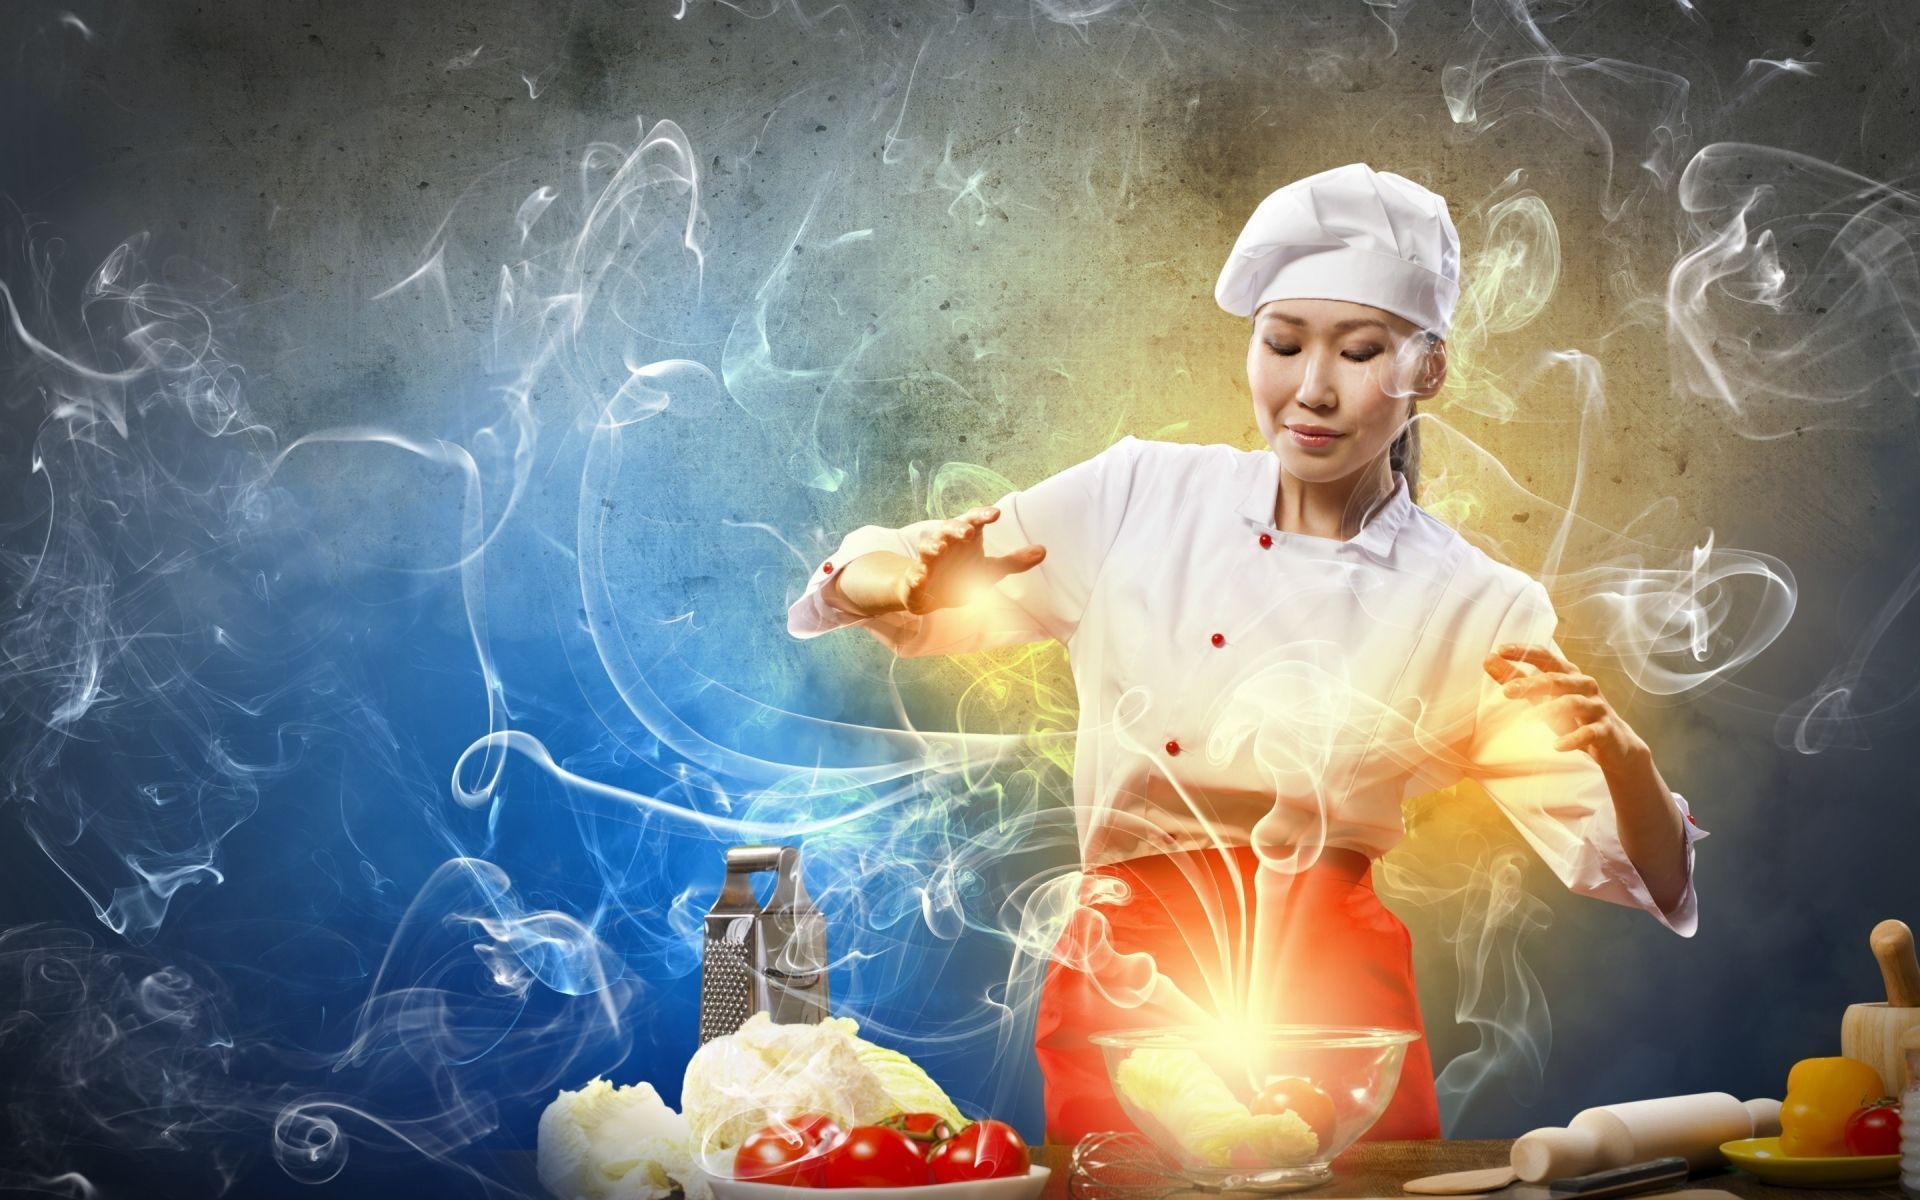 Chef Wallpapers Page 1